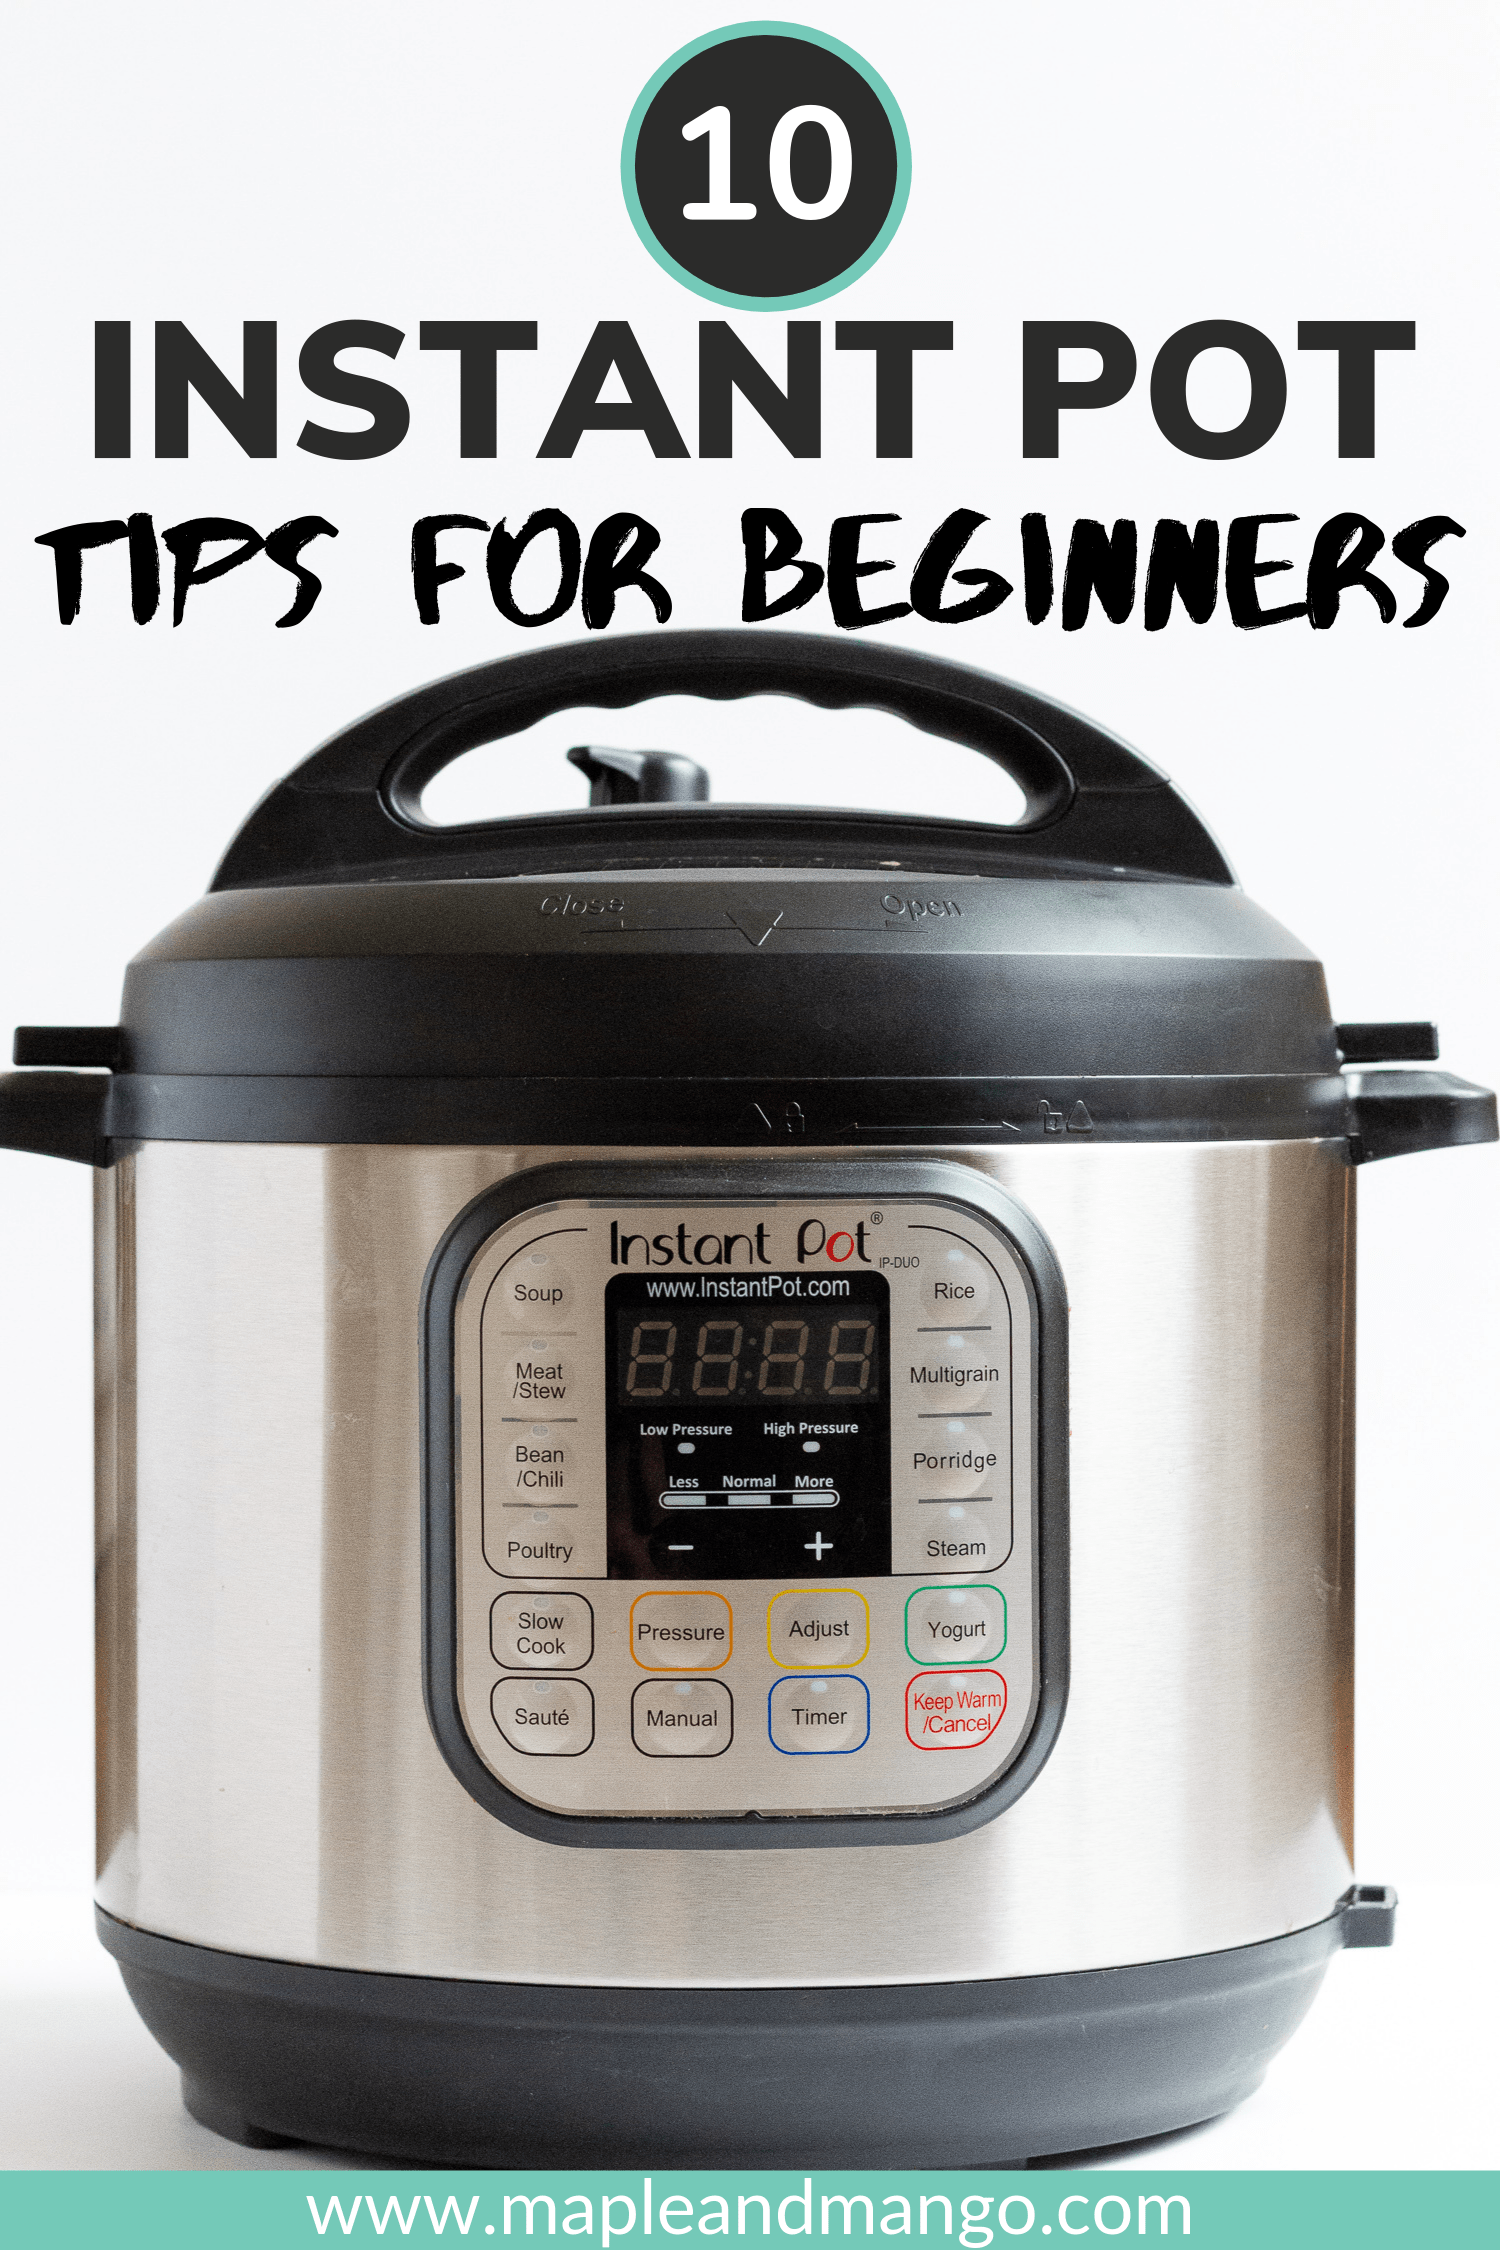 Pinterest image of an Instant Pot with title that says: 10 Instant Pot Tips For Beginners